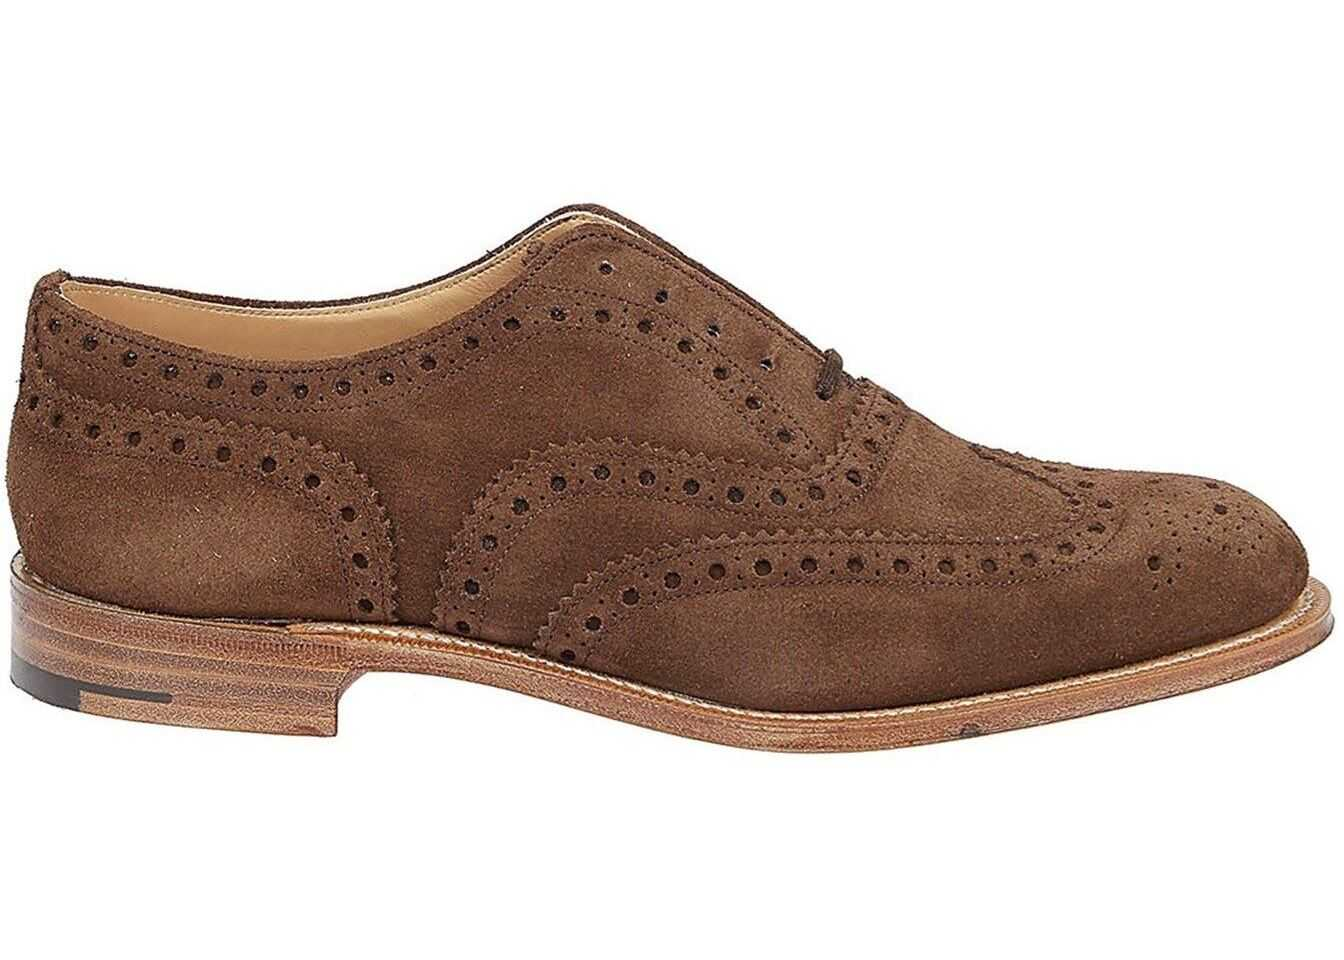 Church's Burwood Brogue Oxford Suede Shoes In Brown EEB2649VEF0ADV Brown imagine b-mall.ro